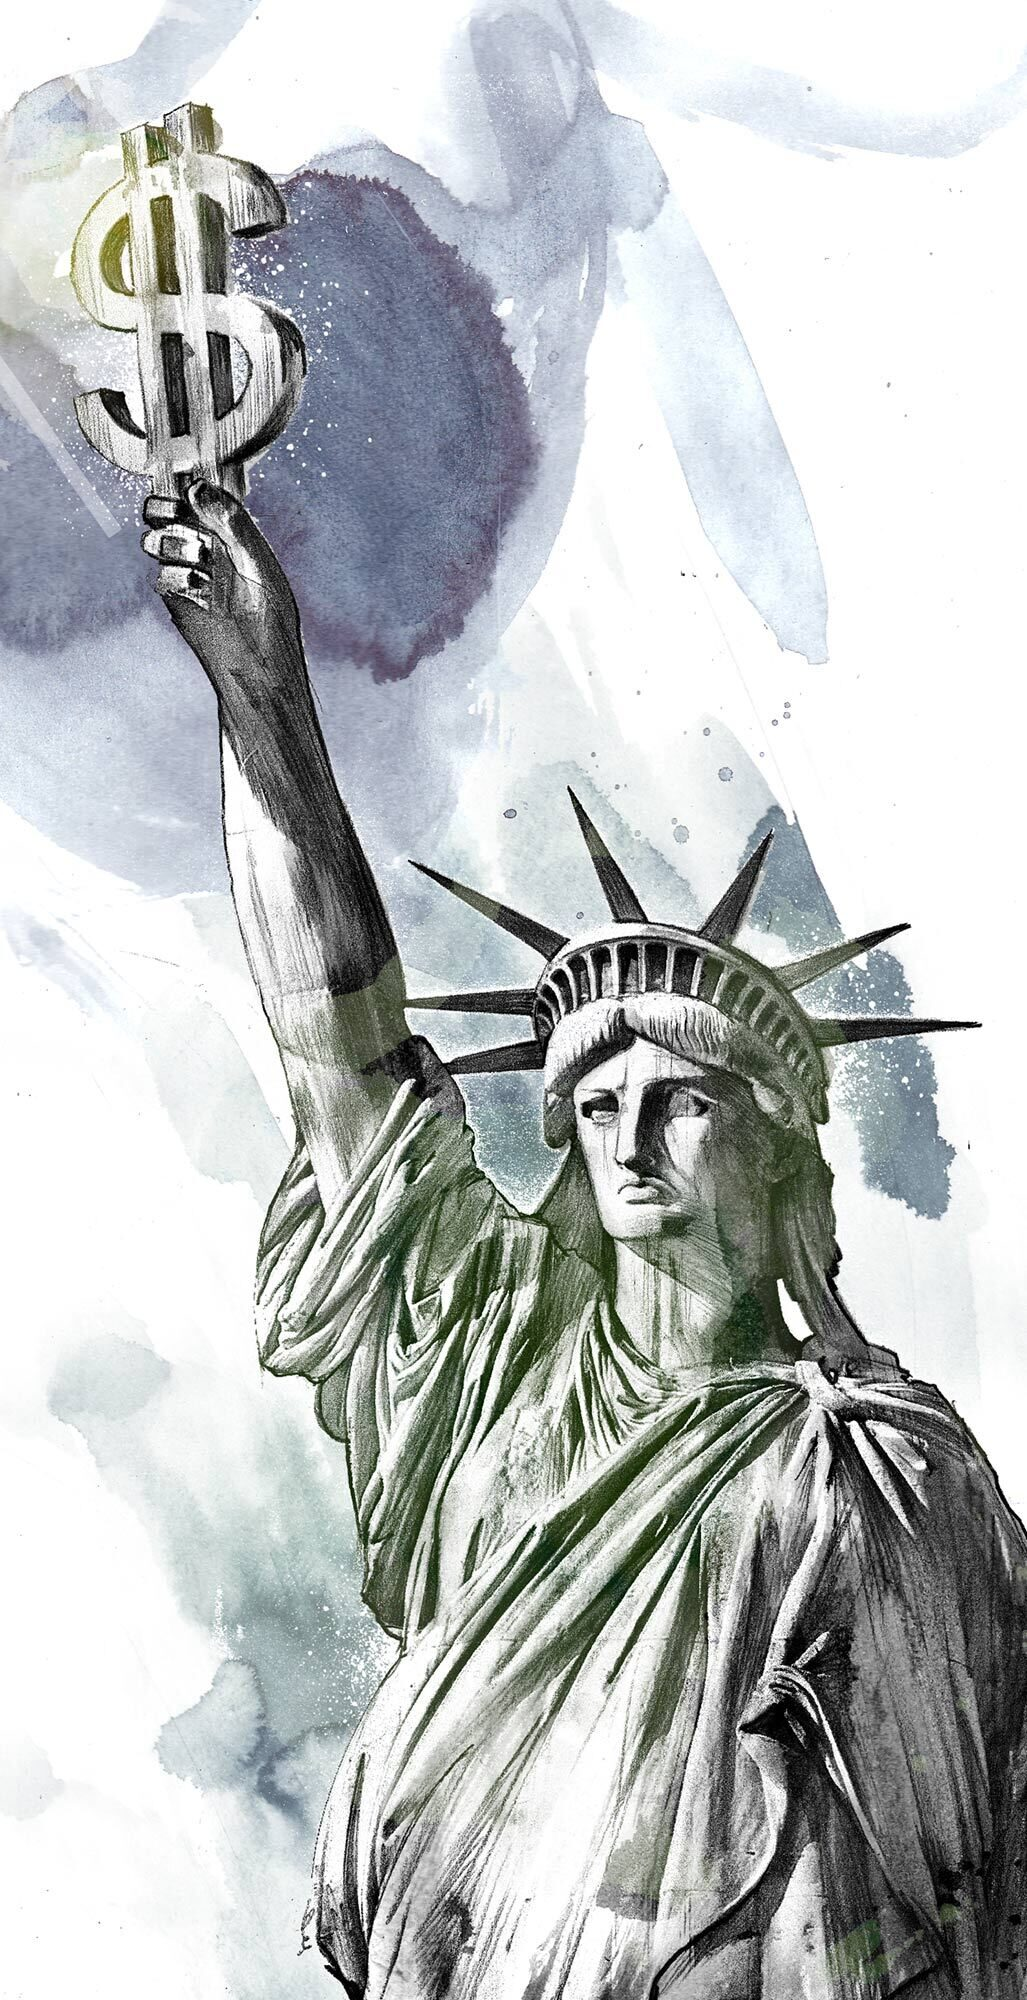 Dollar statue of liberty money - Kornel Illustration | Kornel Stadler portfolio